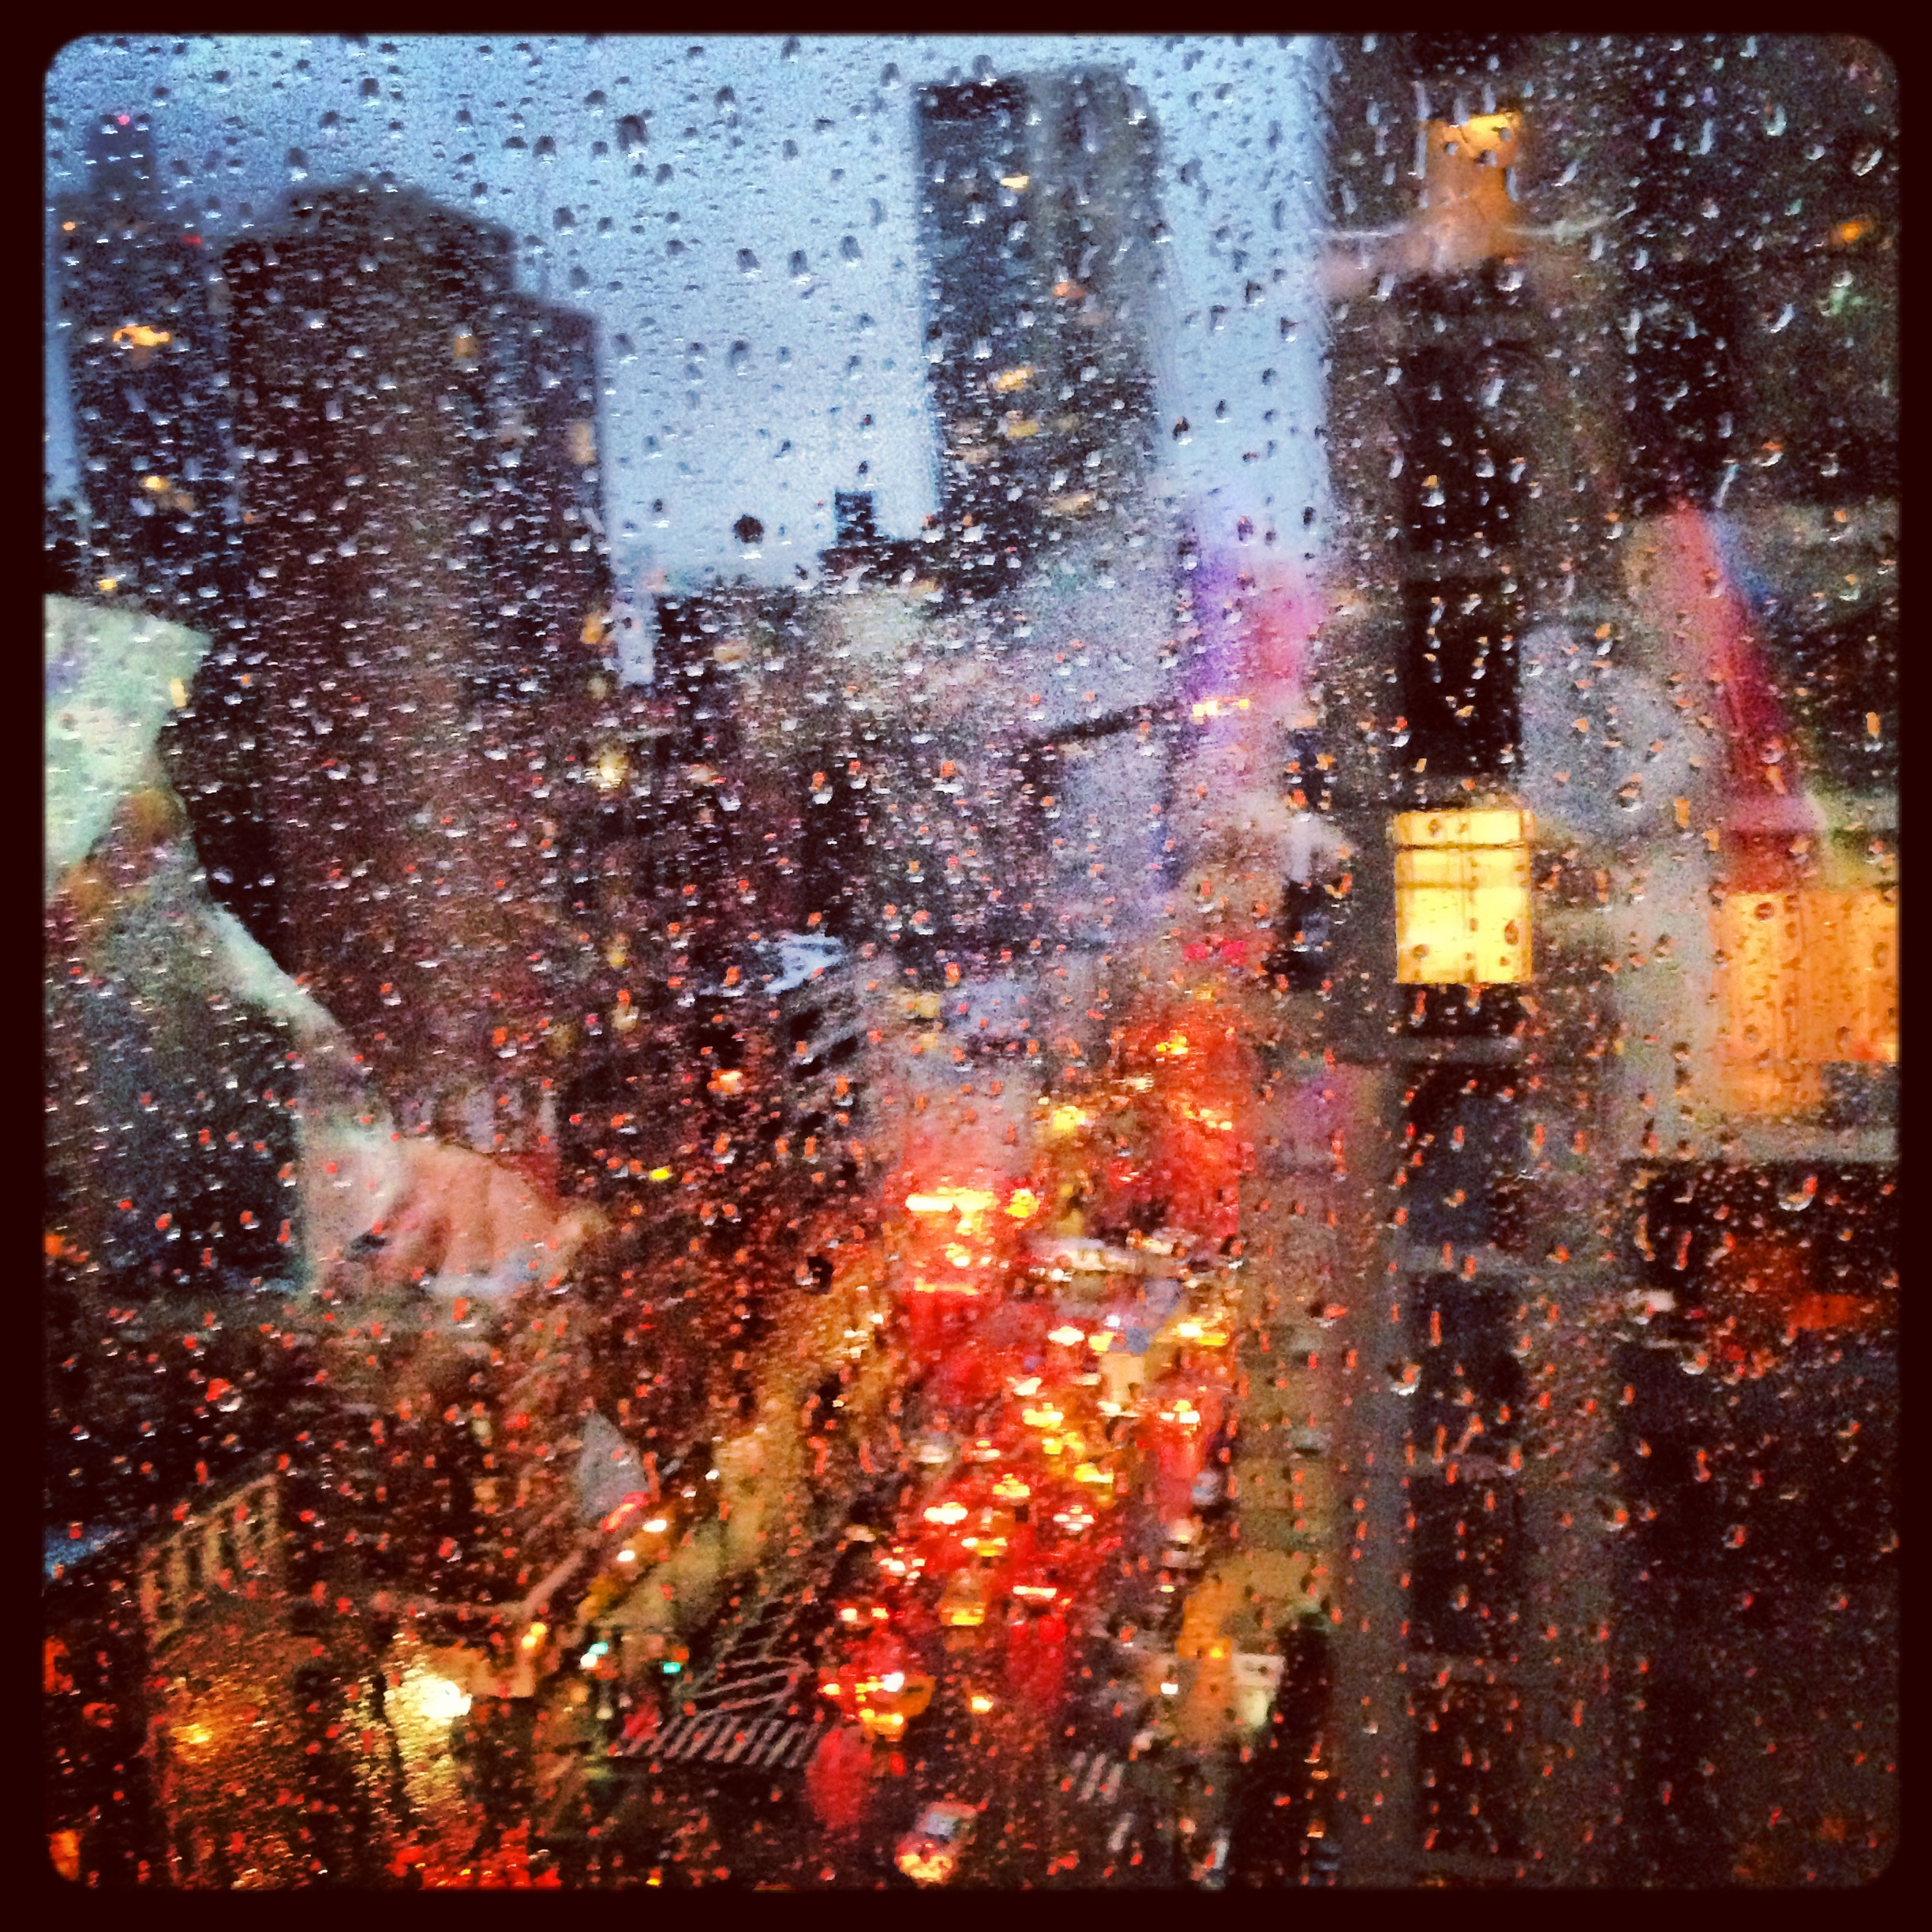 Taken on a rainy evening from the Roosevelt Island Tram.